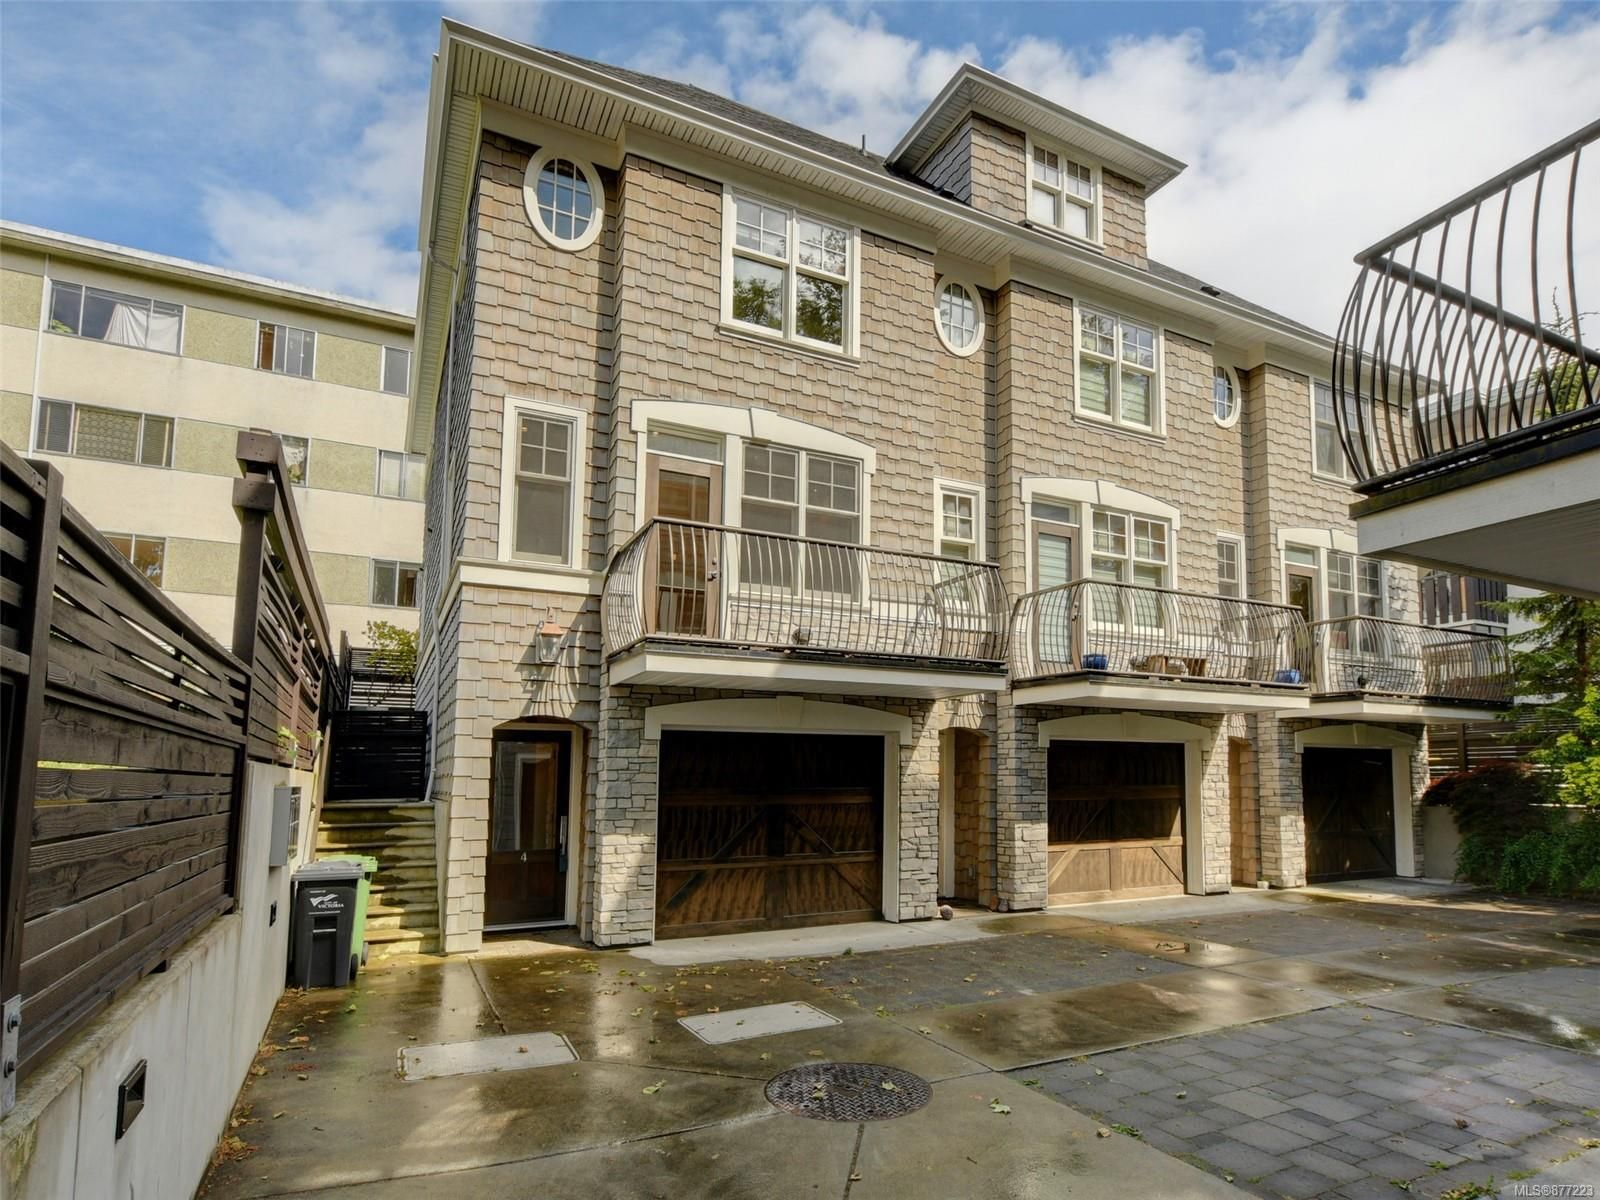 Main Photo: 4 451 Chester Ave in : Vi Fairfield West Row/Townhouse for sale (Victoria)  : MLS®# 877223